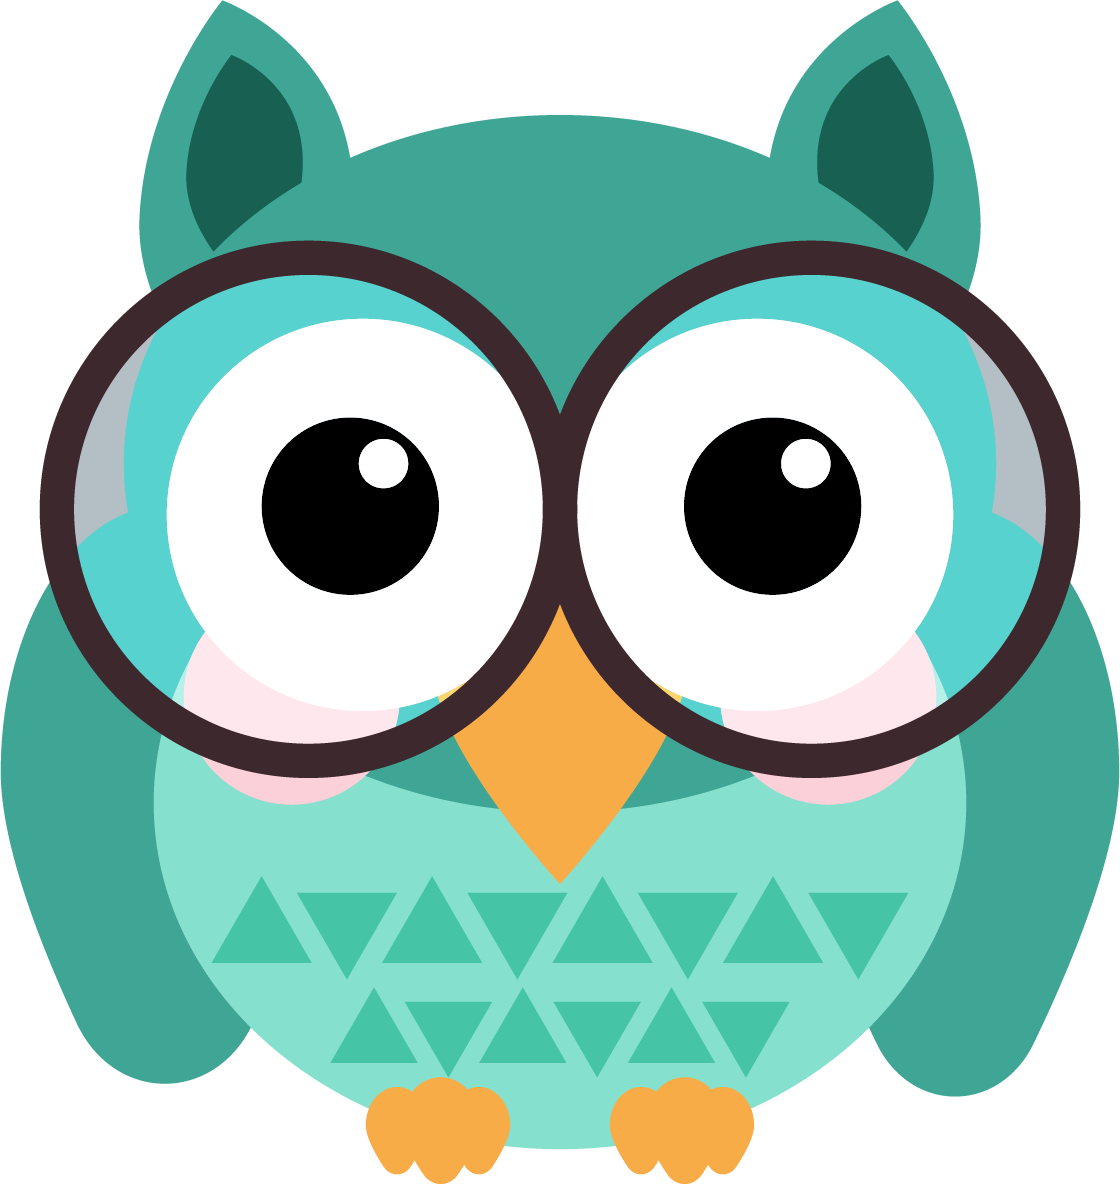 Owl clipart. At getdrawings com free